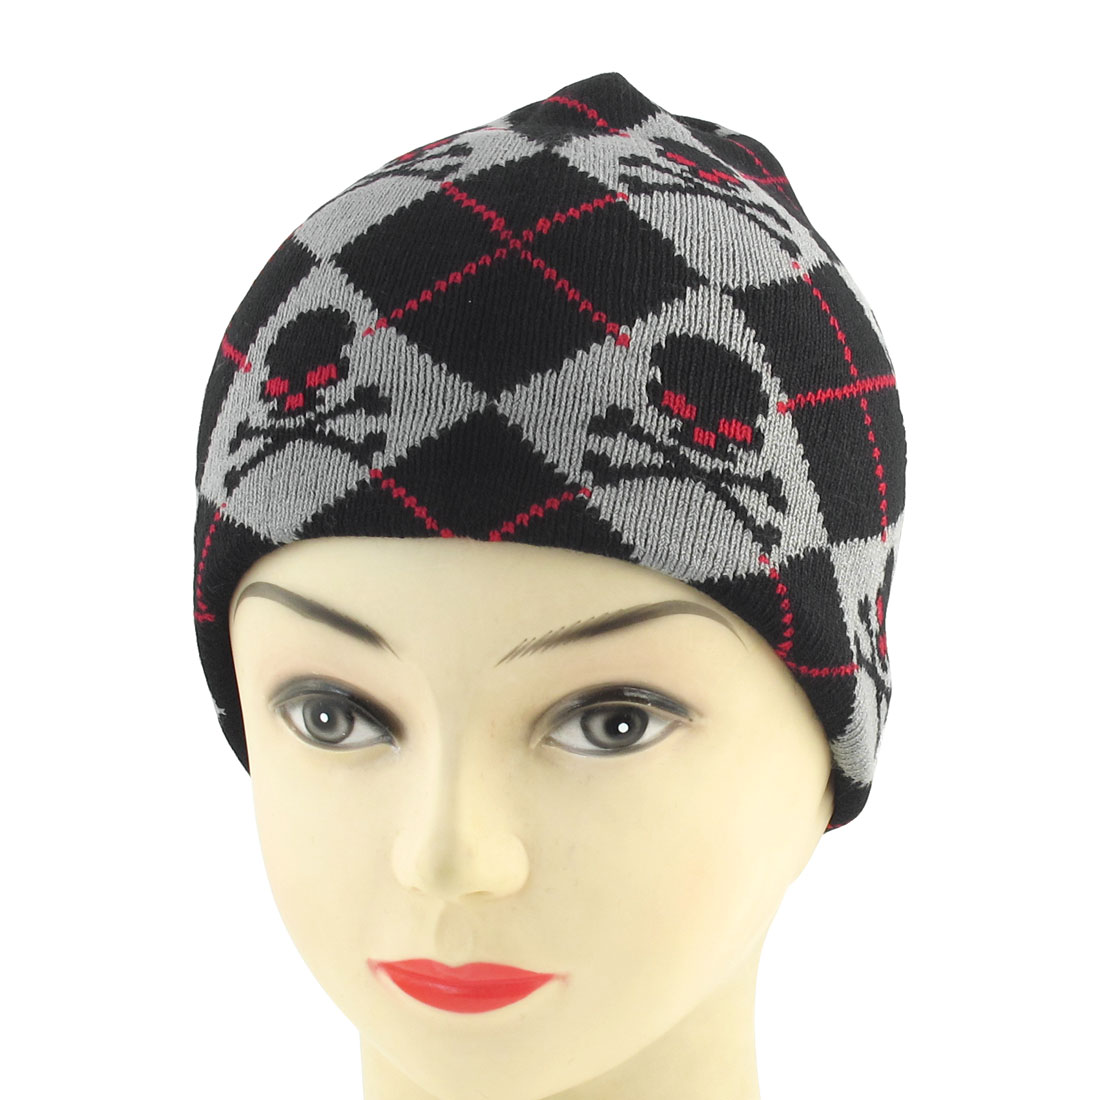 Unisex Black Red Skull Heads Print Knit Elastic Winter Warmer Beanies Hat Cap